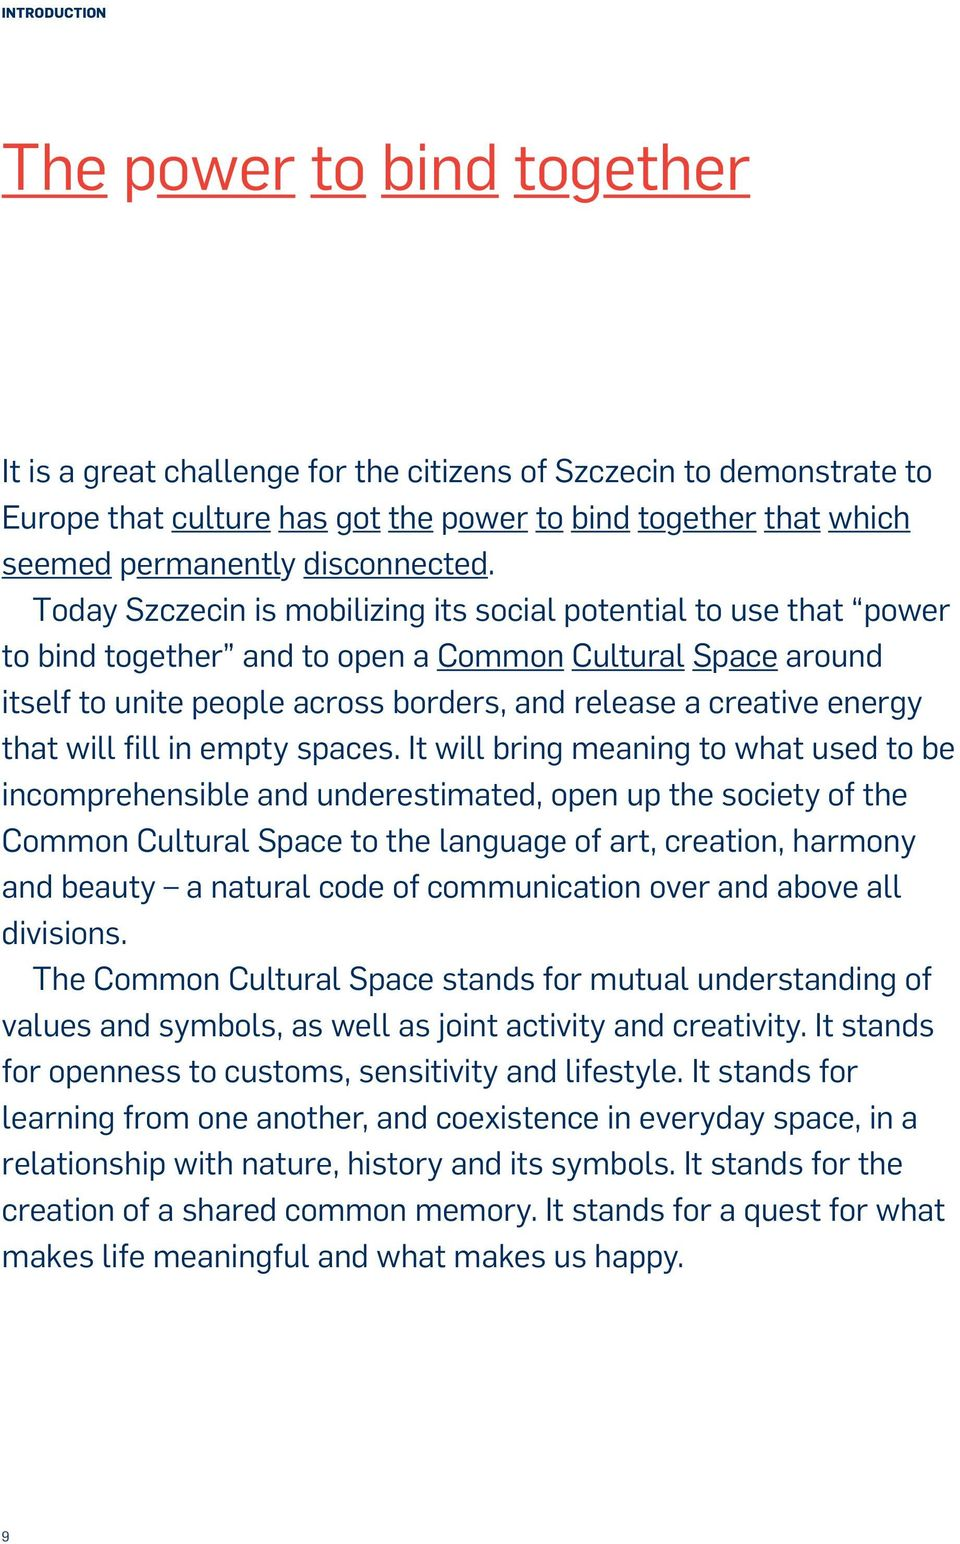 Today Szczecin is mobilizing its social potential to use that power to bind together and to open a Common Cultural Space around itself to unite people across borders, and release a creative energy